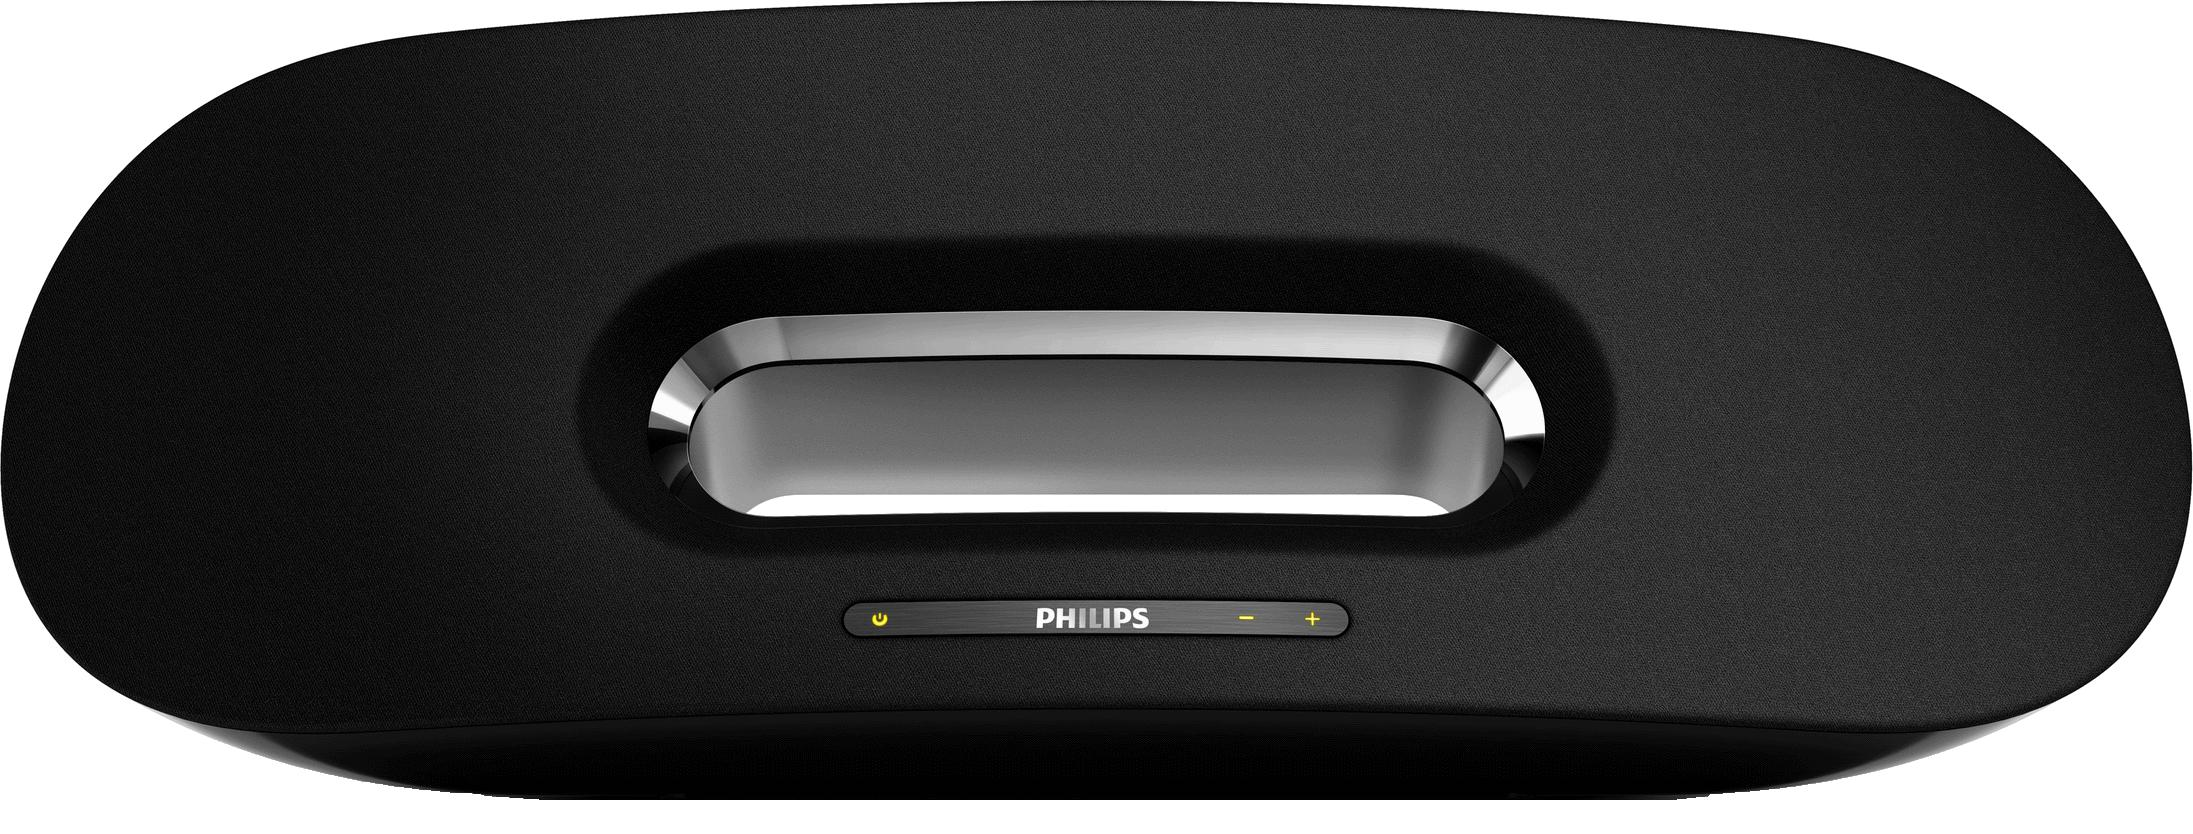 Philips Fidelio DS8800